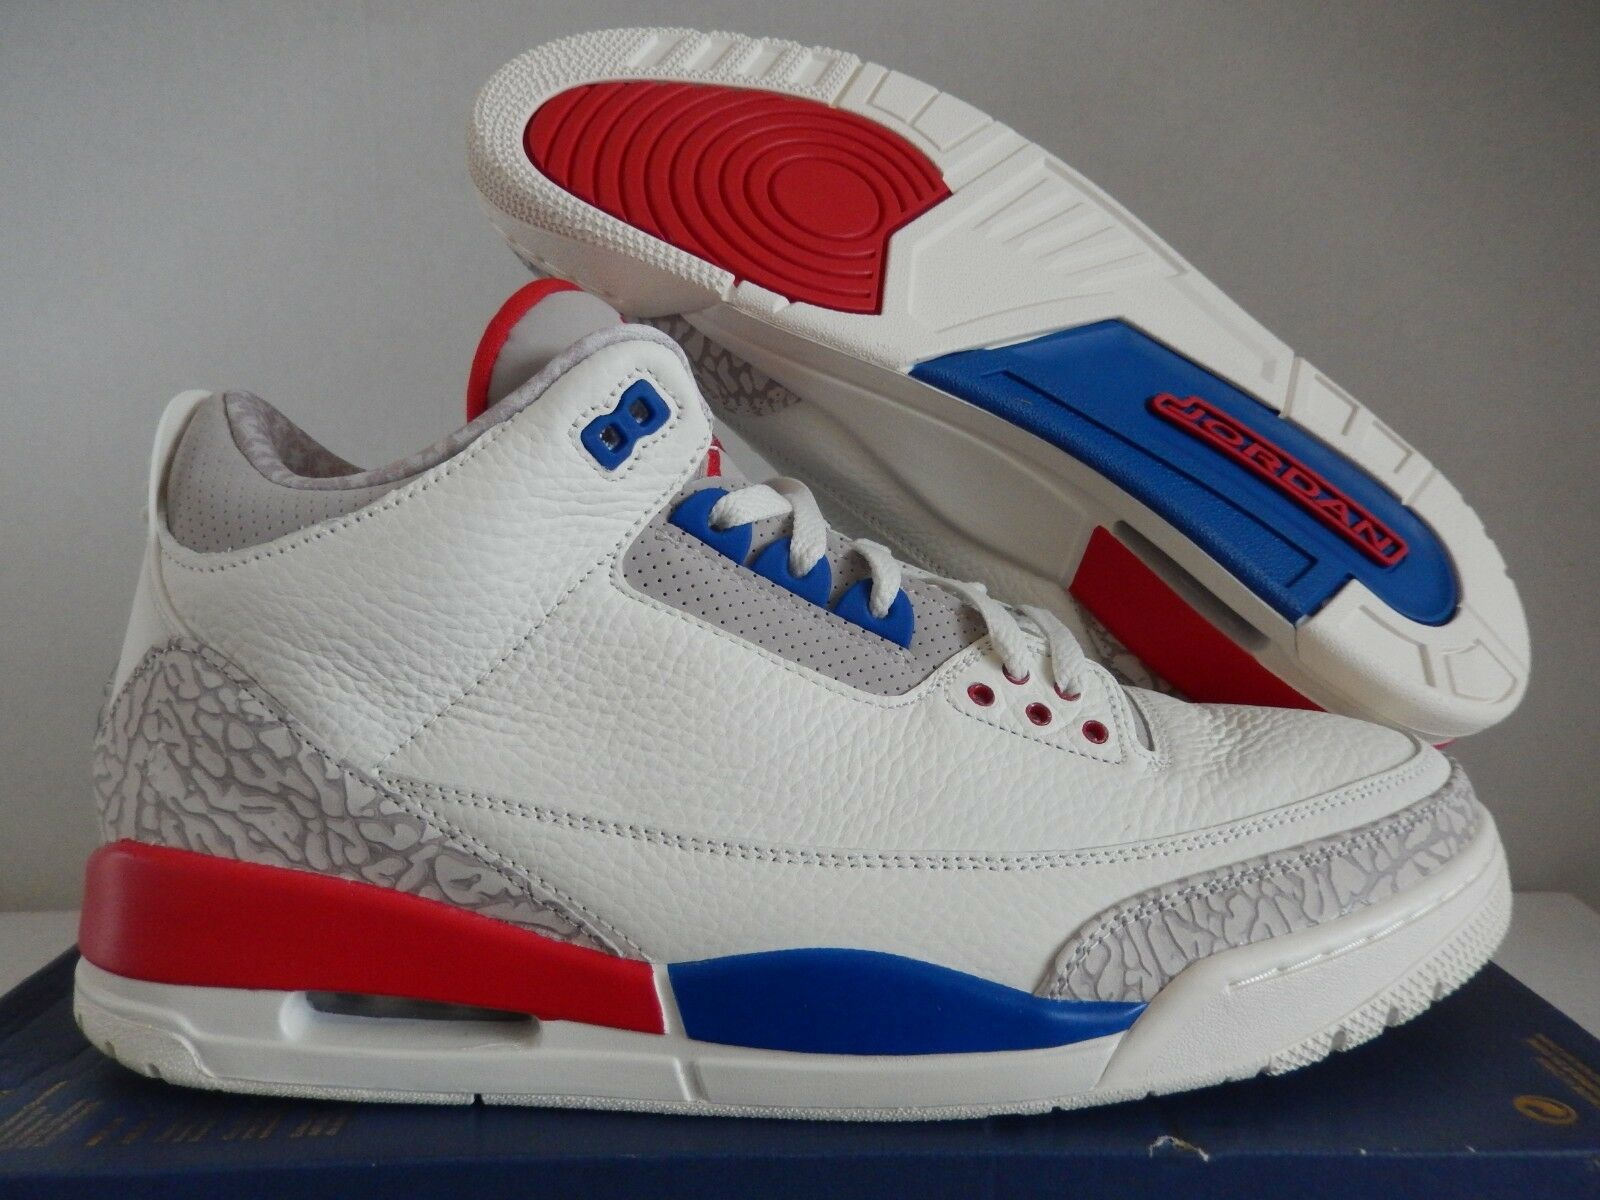 Nike Air Jordan 3 Retro International Charity Game Sail 136064-140 ... ba9e5c643